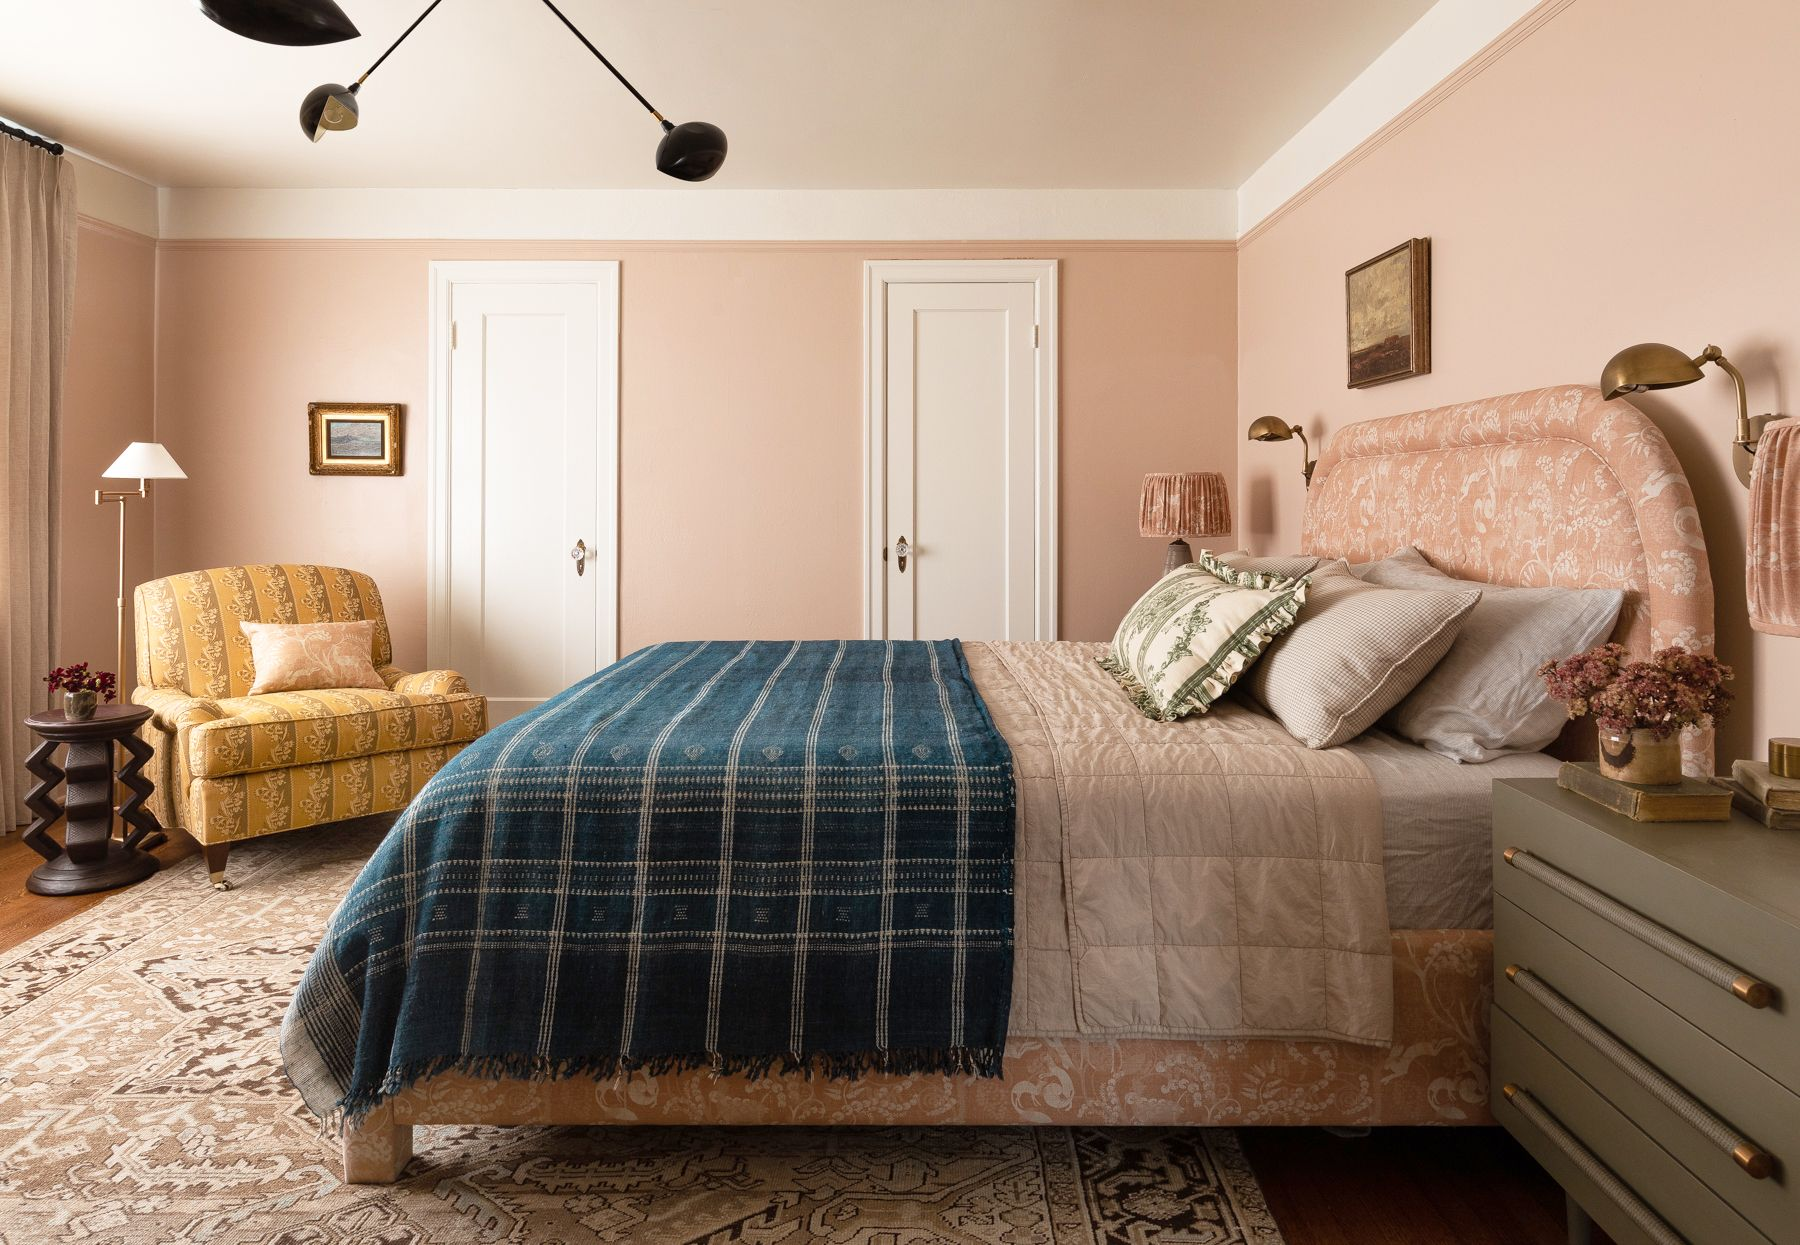 9 Best Bedroom Colors 9 - Paint Color Ideas for Bedrooms